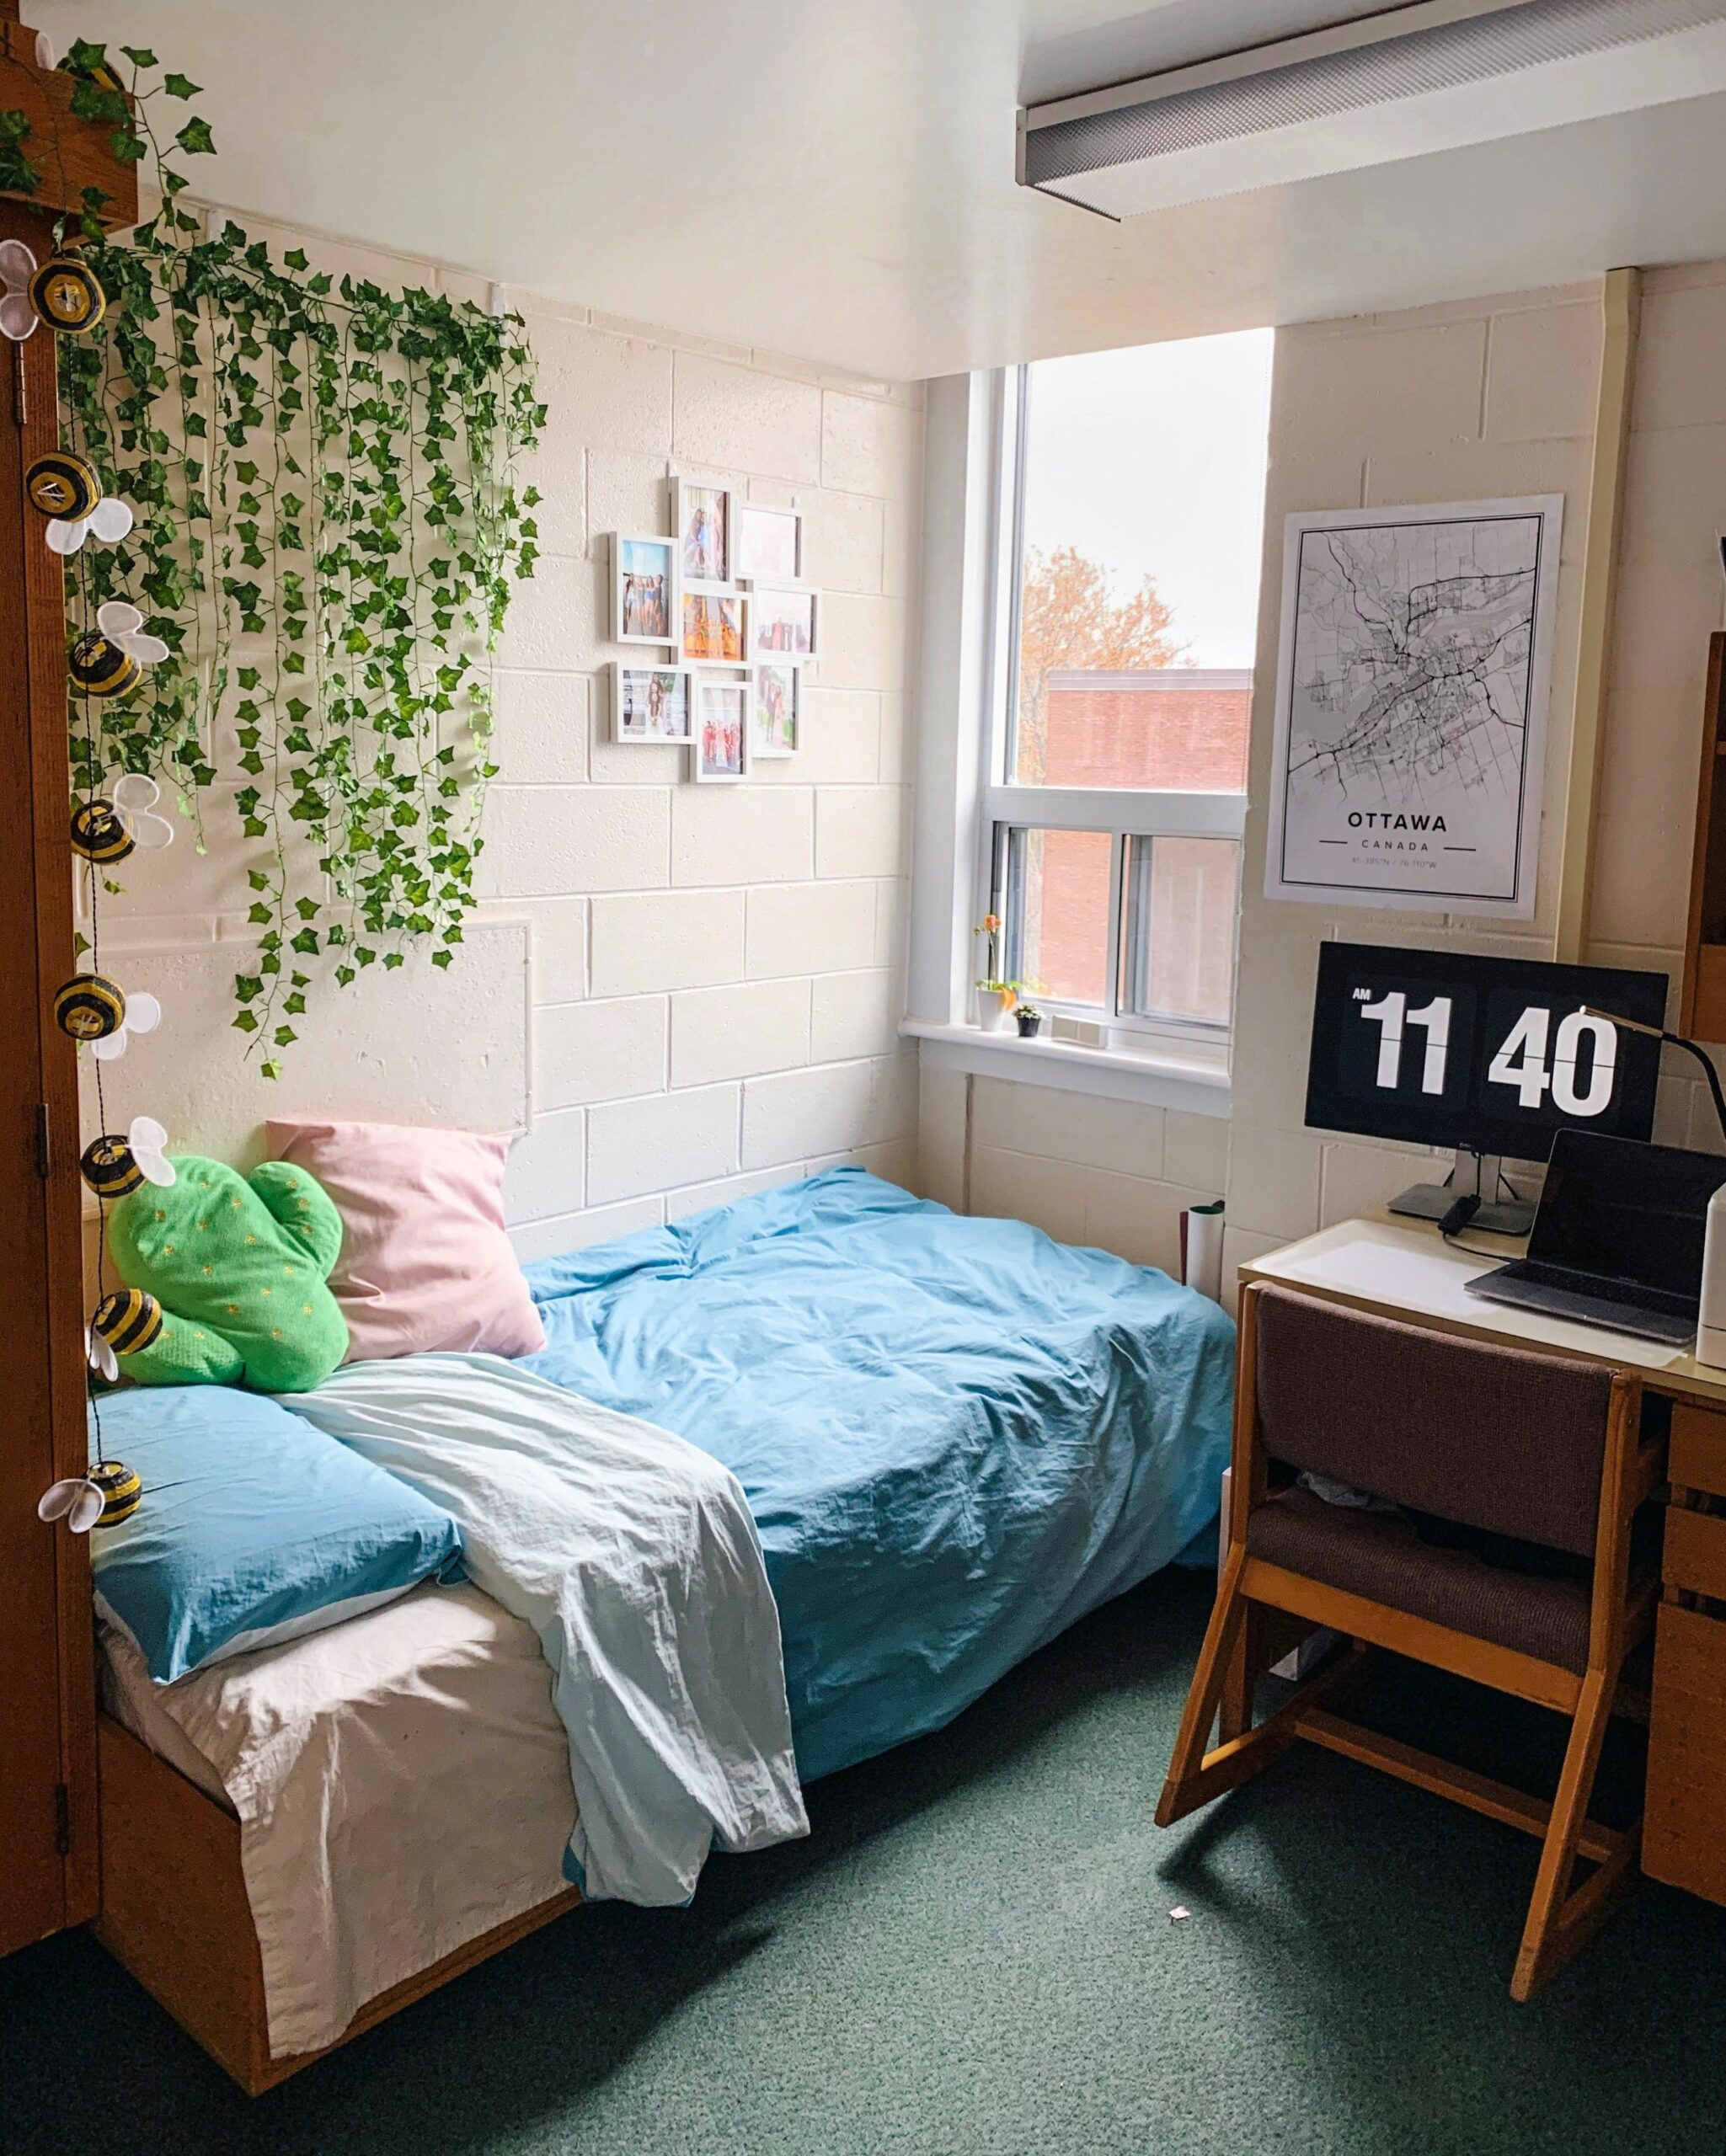 Pin on room inspo - dorm room design and decor ottawa